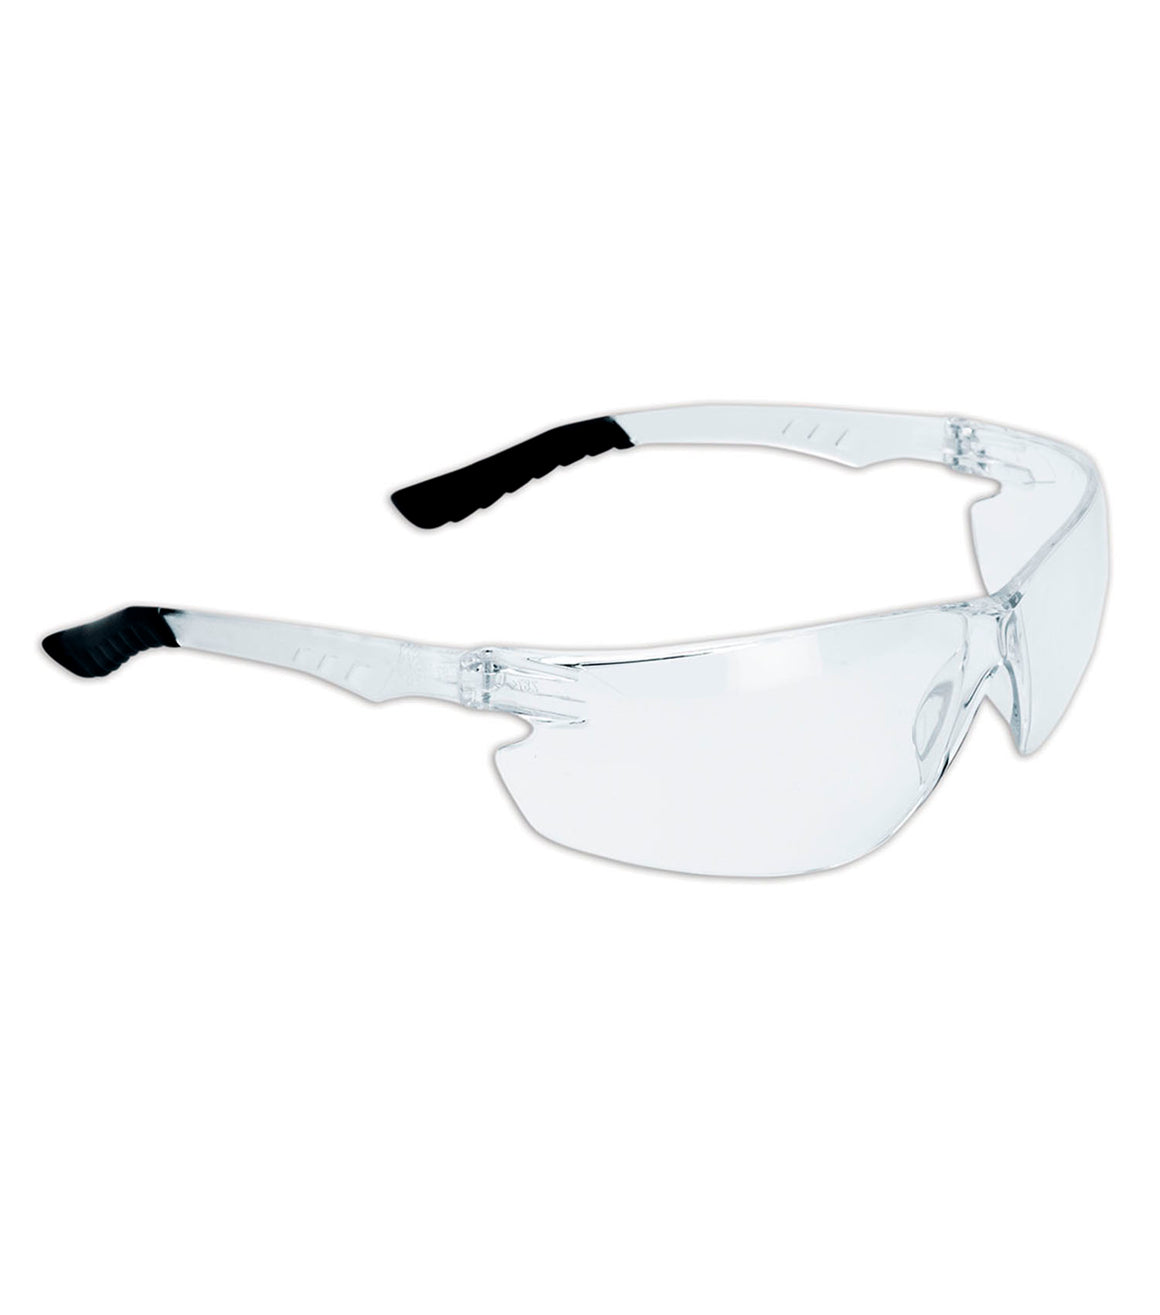 DY EP850C Lunettes Securite Dy